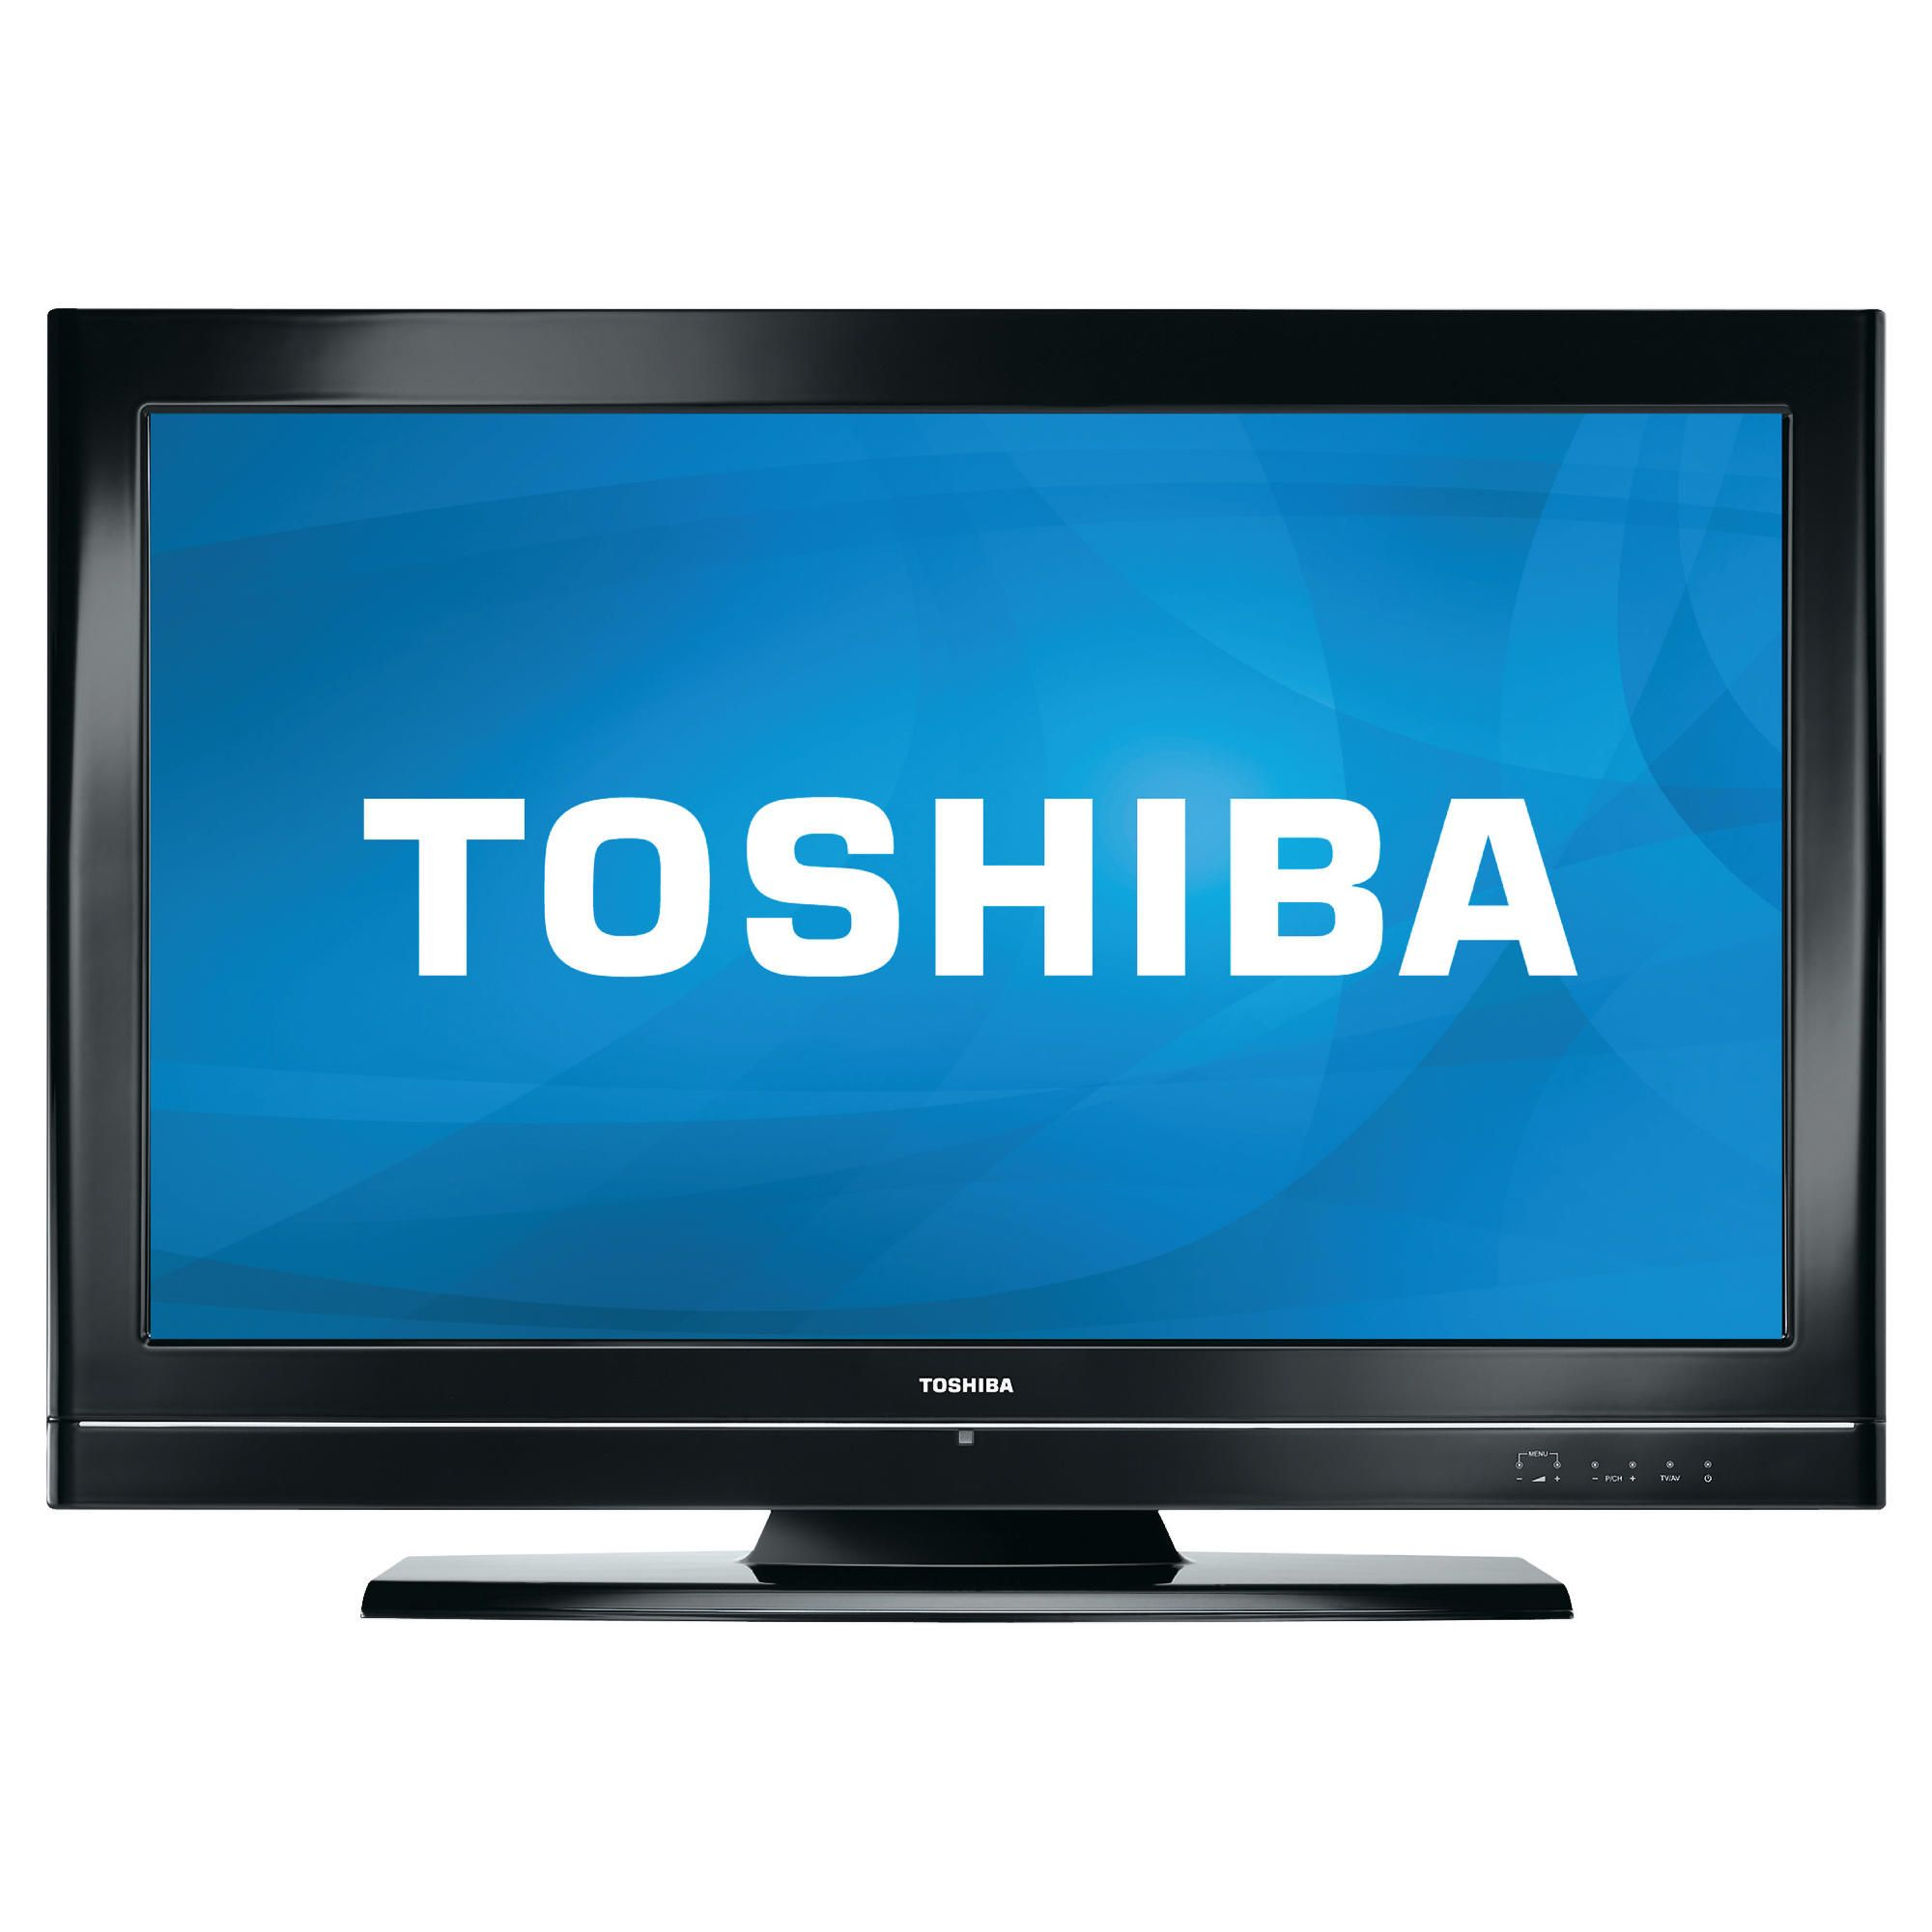 Toshiba 40BV701B 40 Widescreen Full HD 1080p LCD TV with Freeview